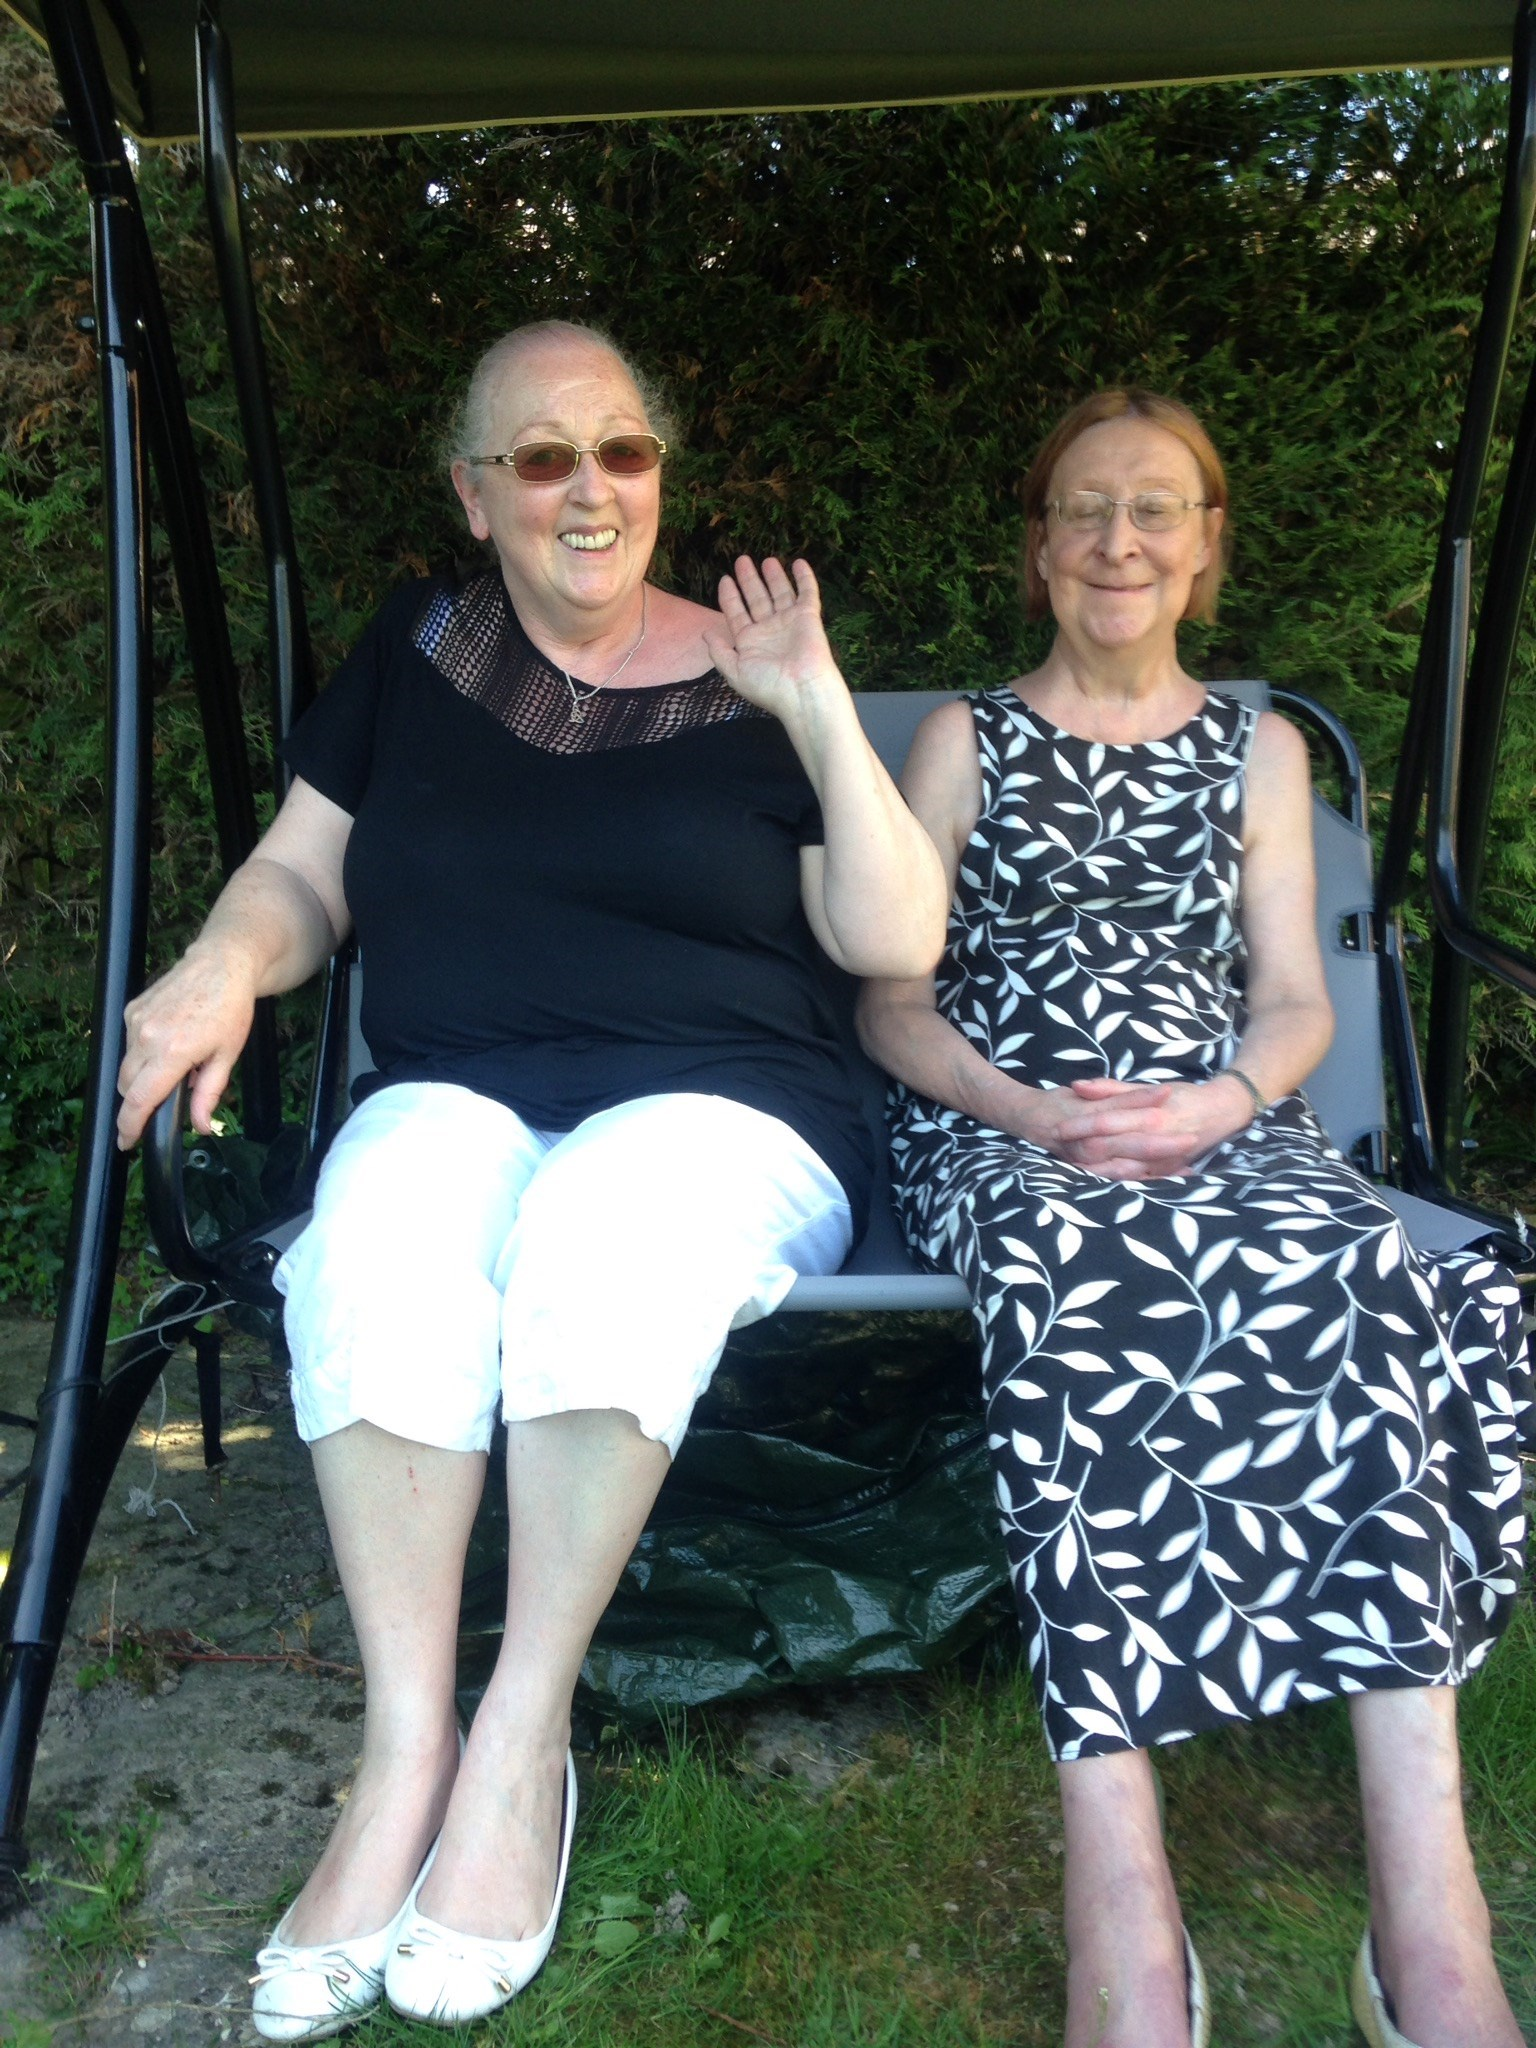 Bernadette with Rose after Polish cakes in the garden.